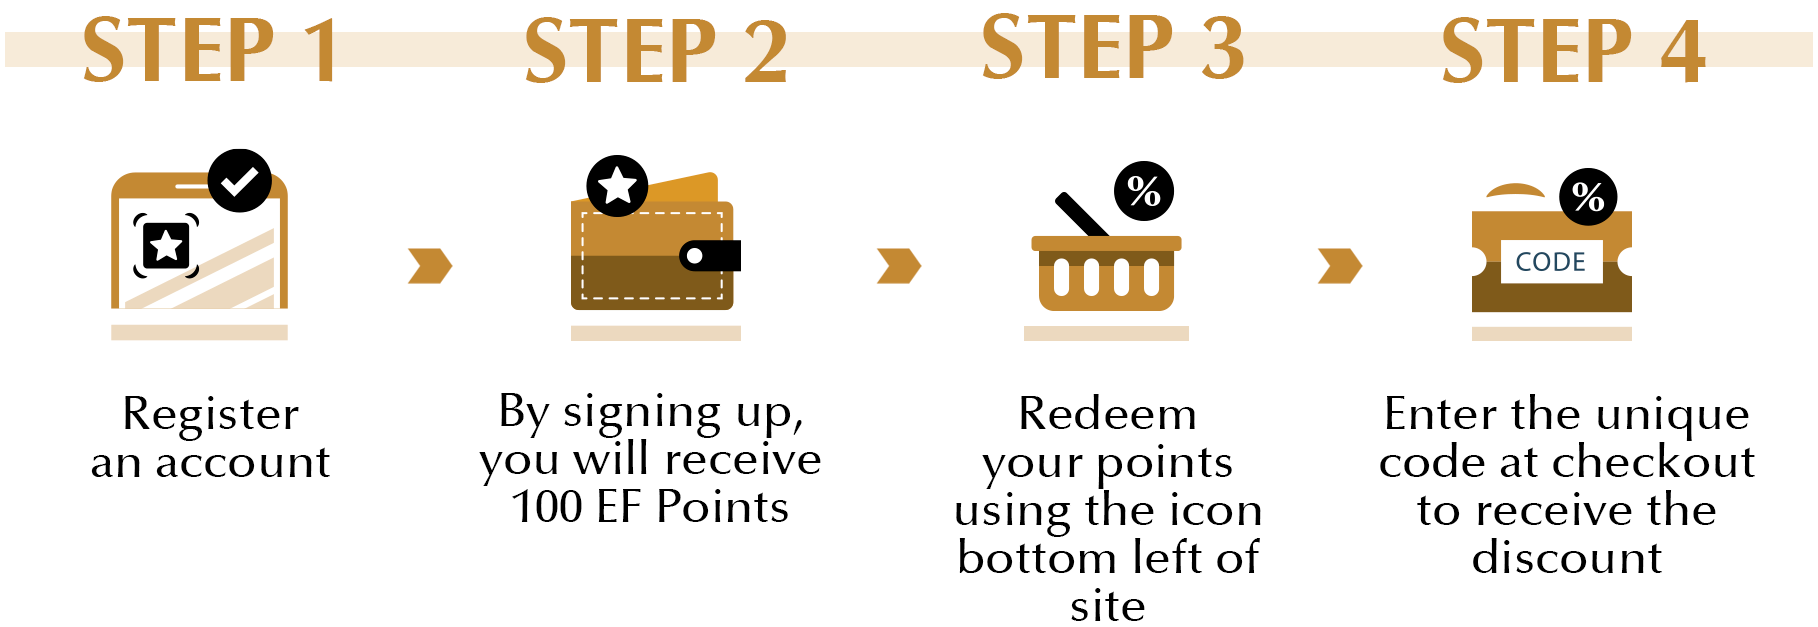 VIP Rewards - Steps to receiving points